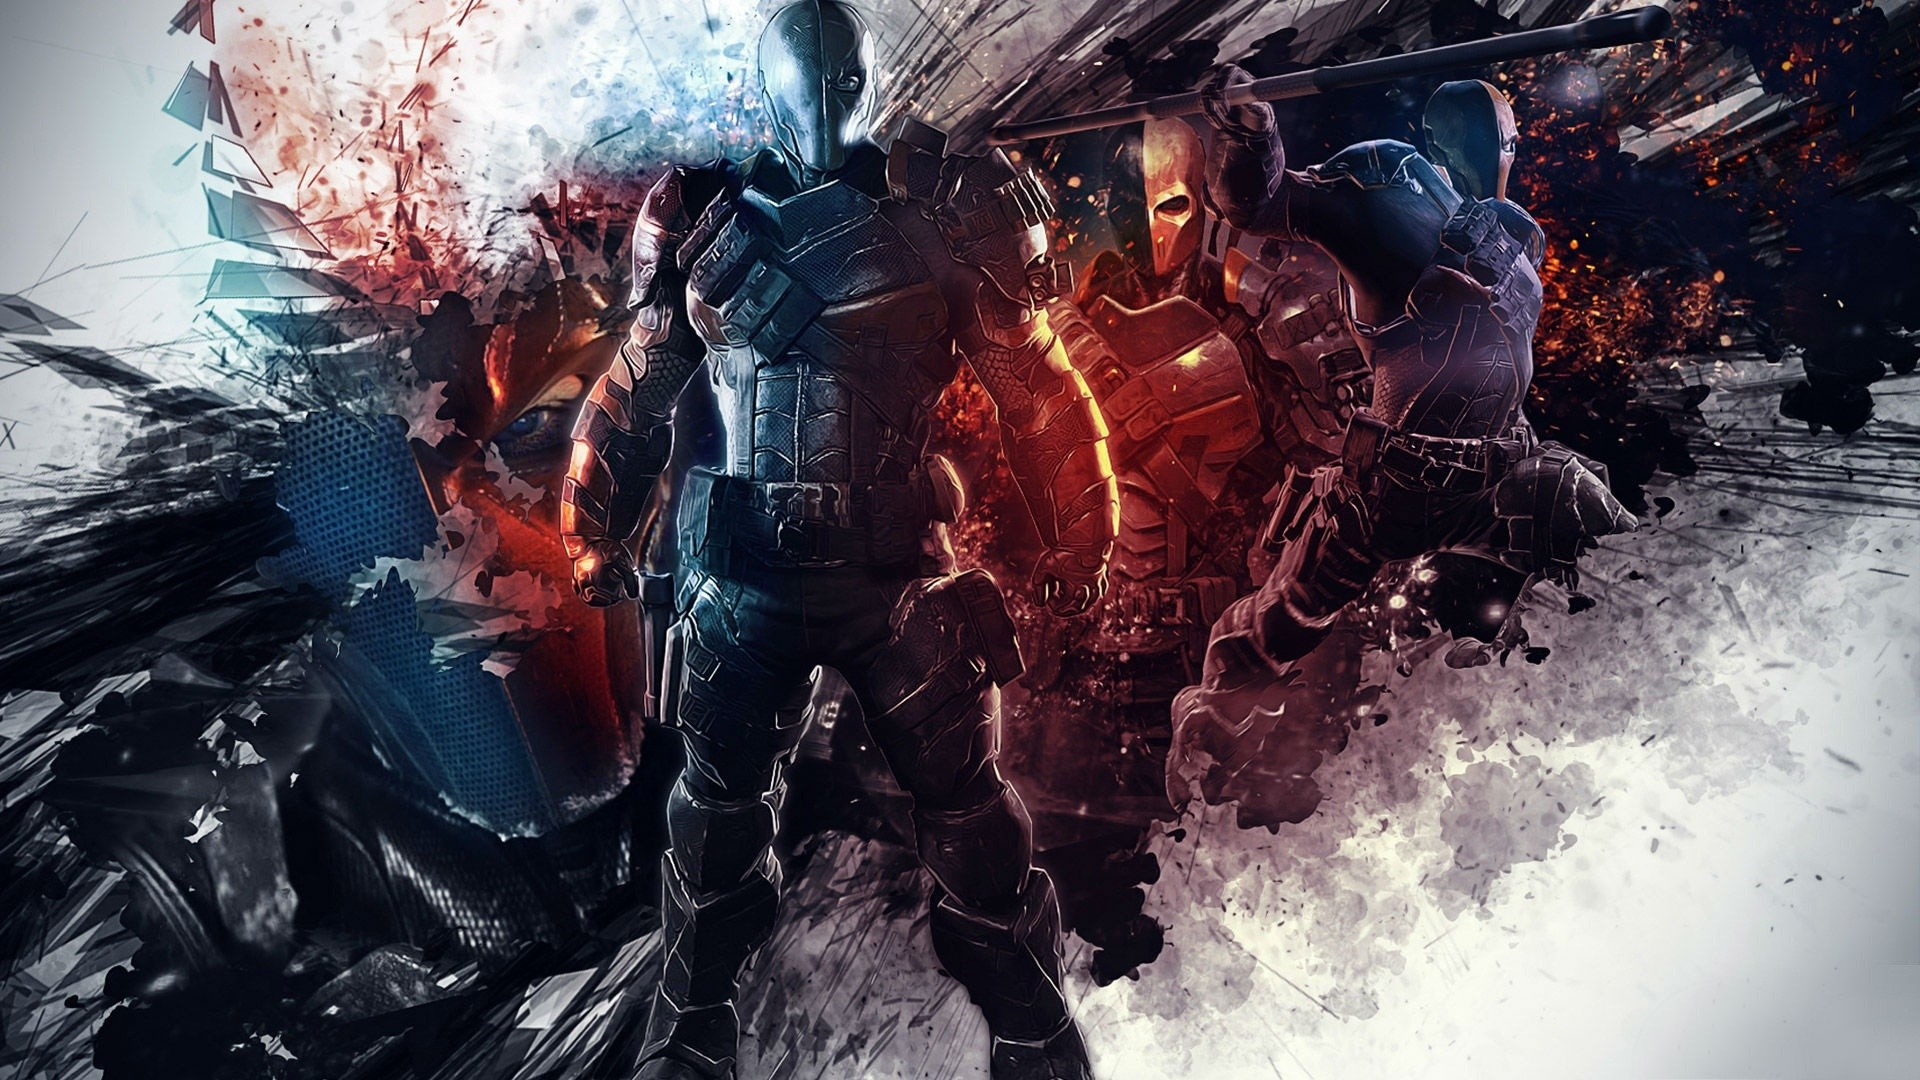 1920x1080 Batman Arkham Origins DeathStroke Wallpaper by TheSyanArt